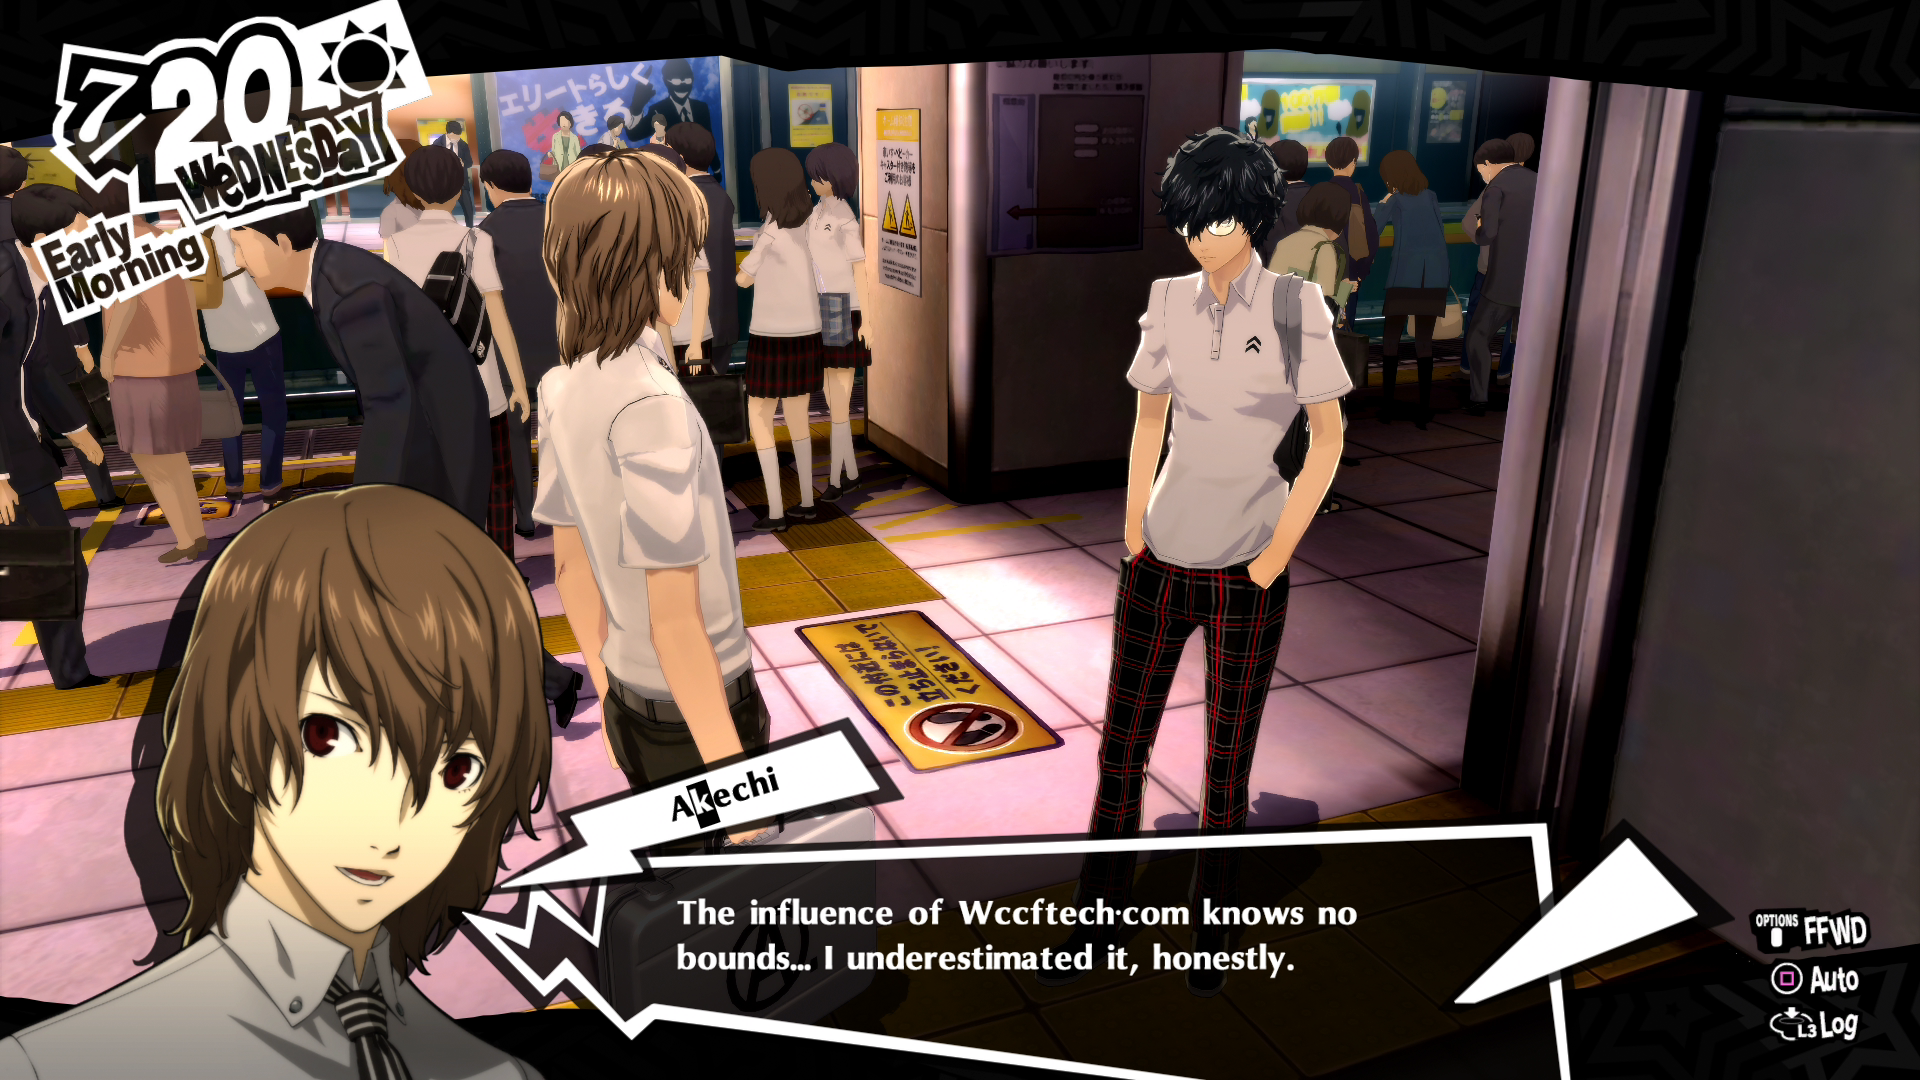 persona-5-royal-wccftech-influence